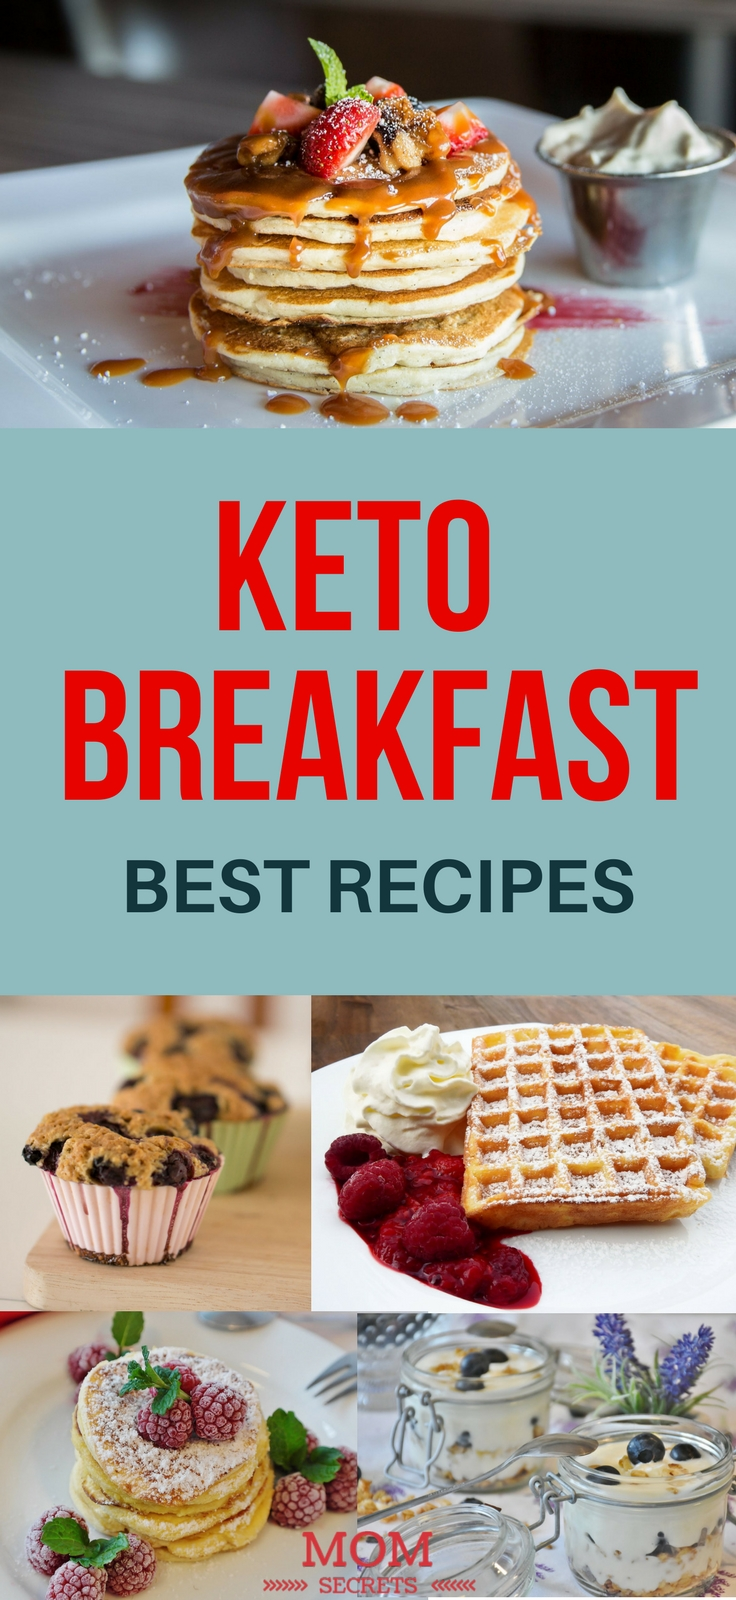 These are my best keto reipes for breakfast if you are on a ketogenic diet.